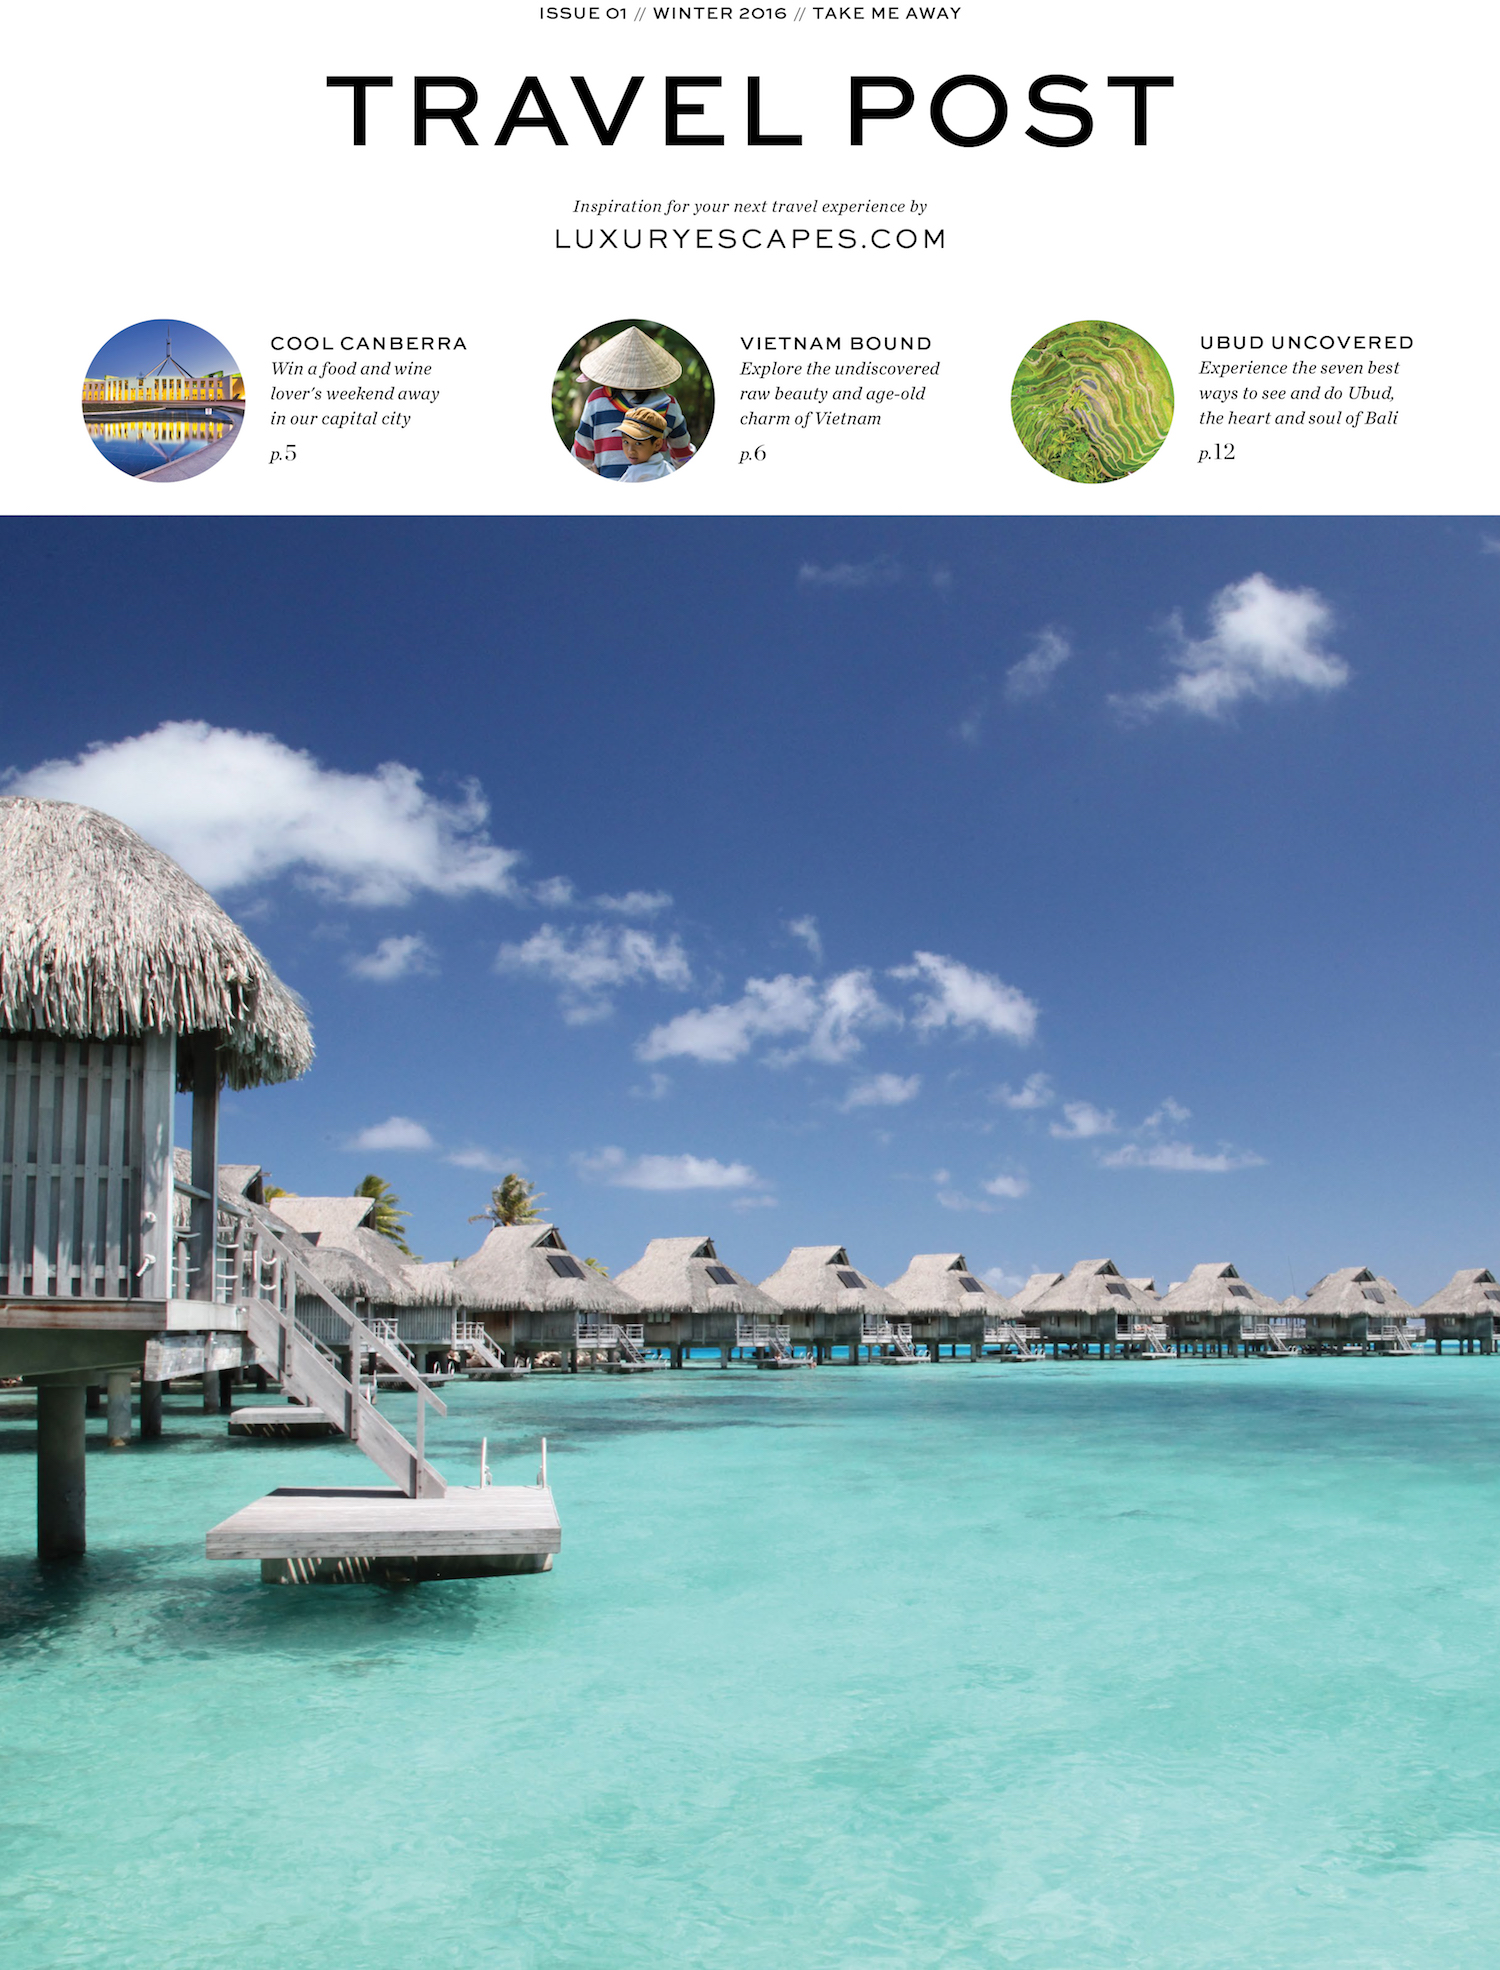 Travel Post cover luxury escapes